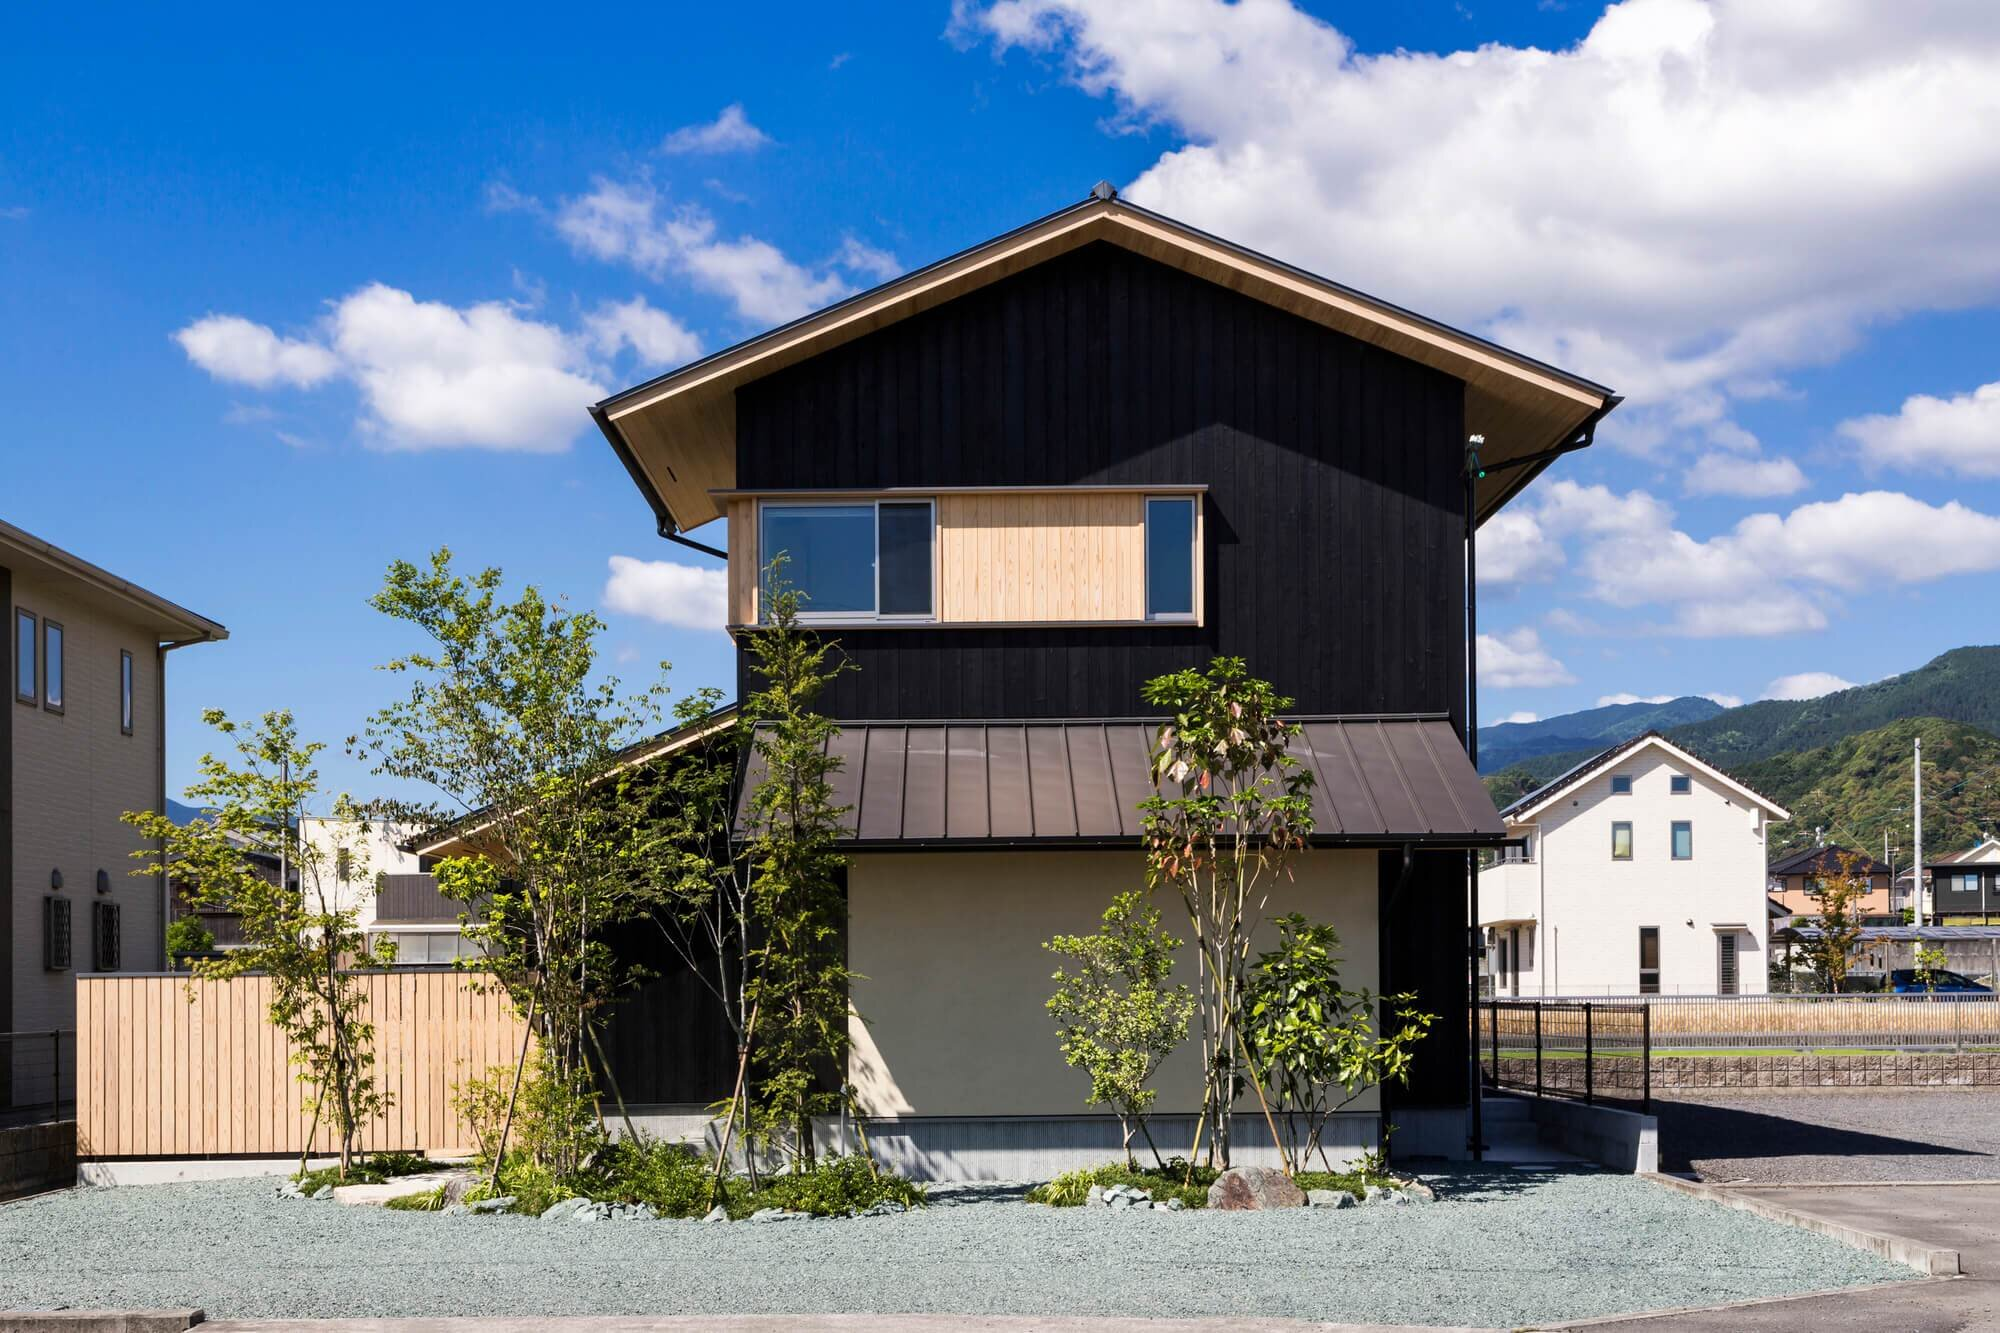 Takashi Okuno Designs a House that Allows the Owners to ...